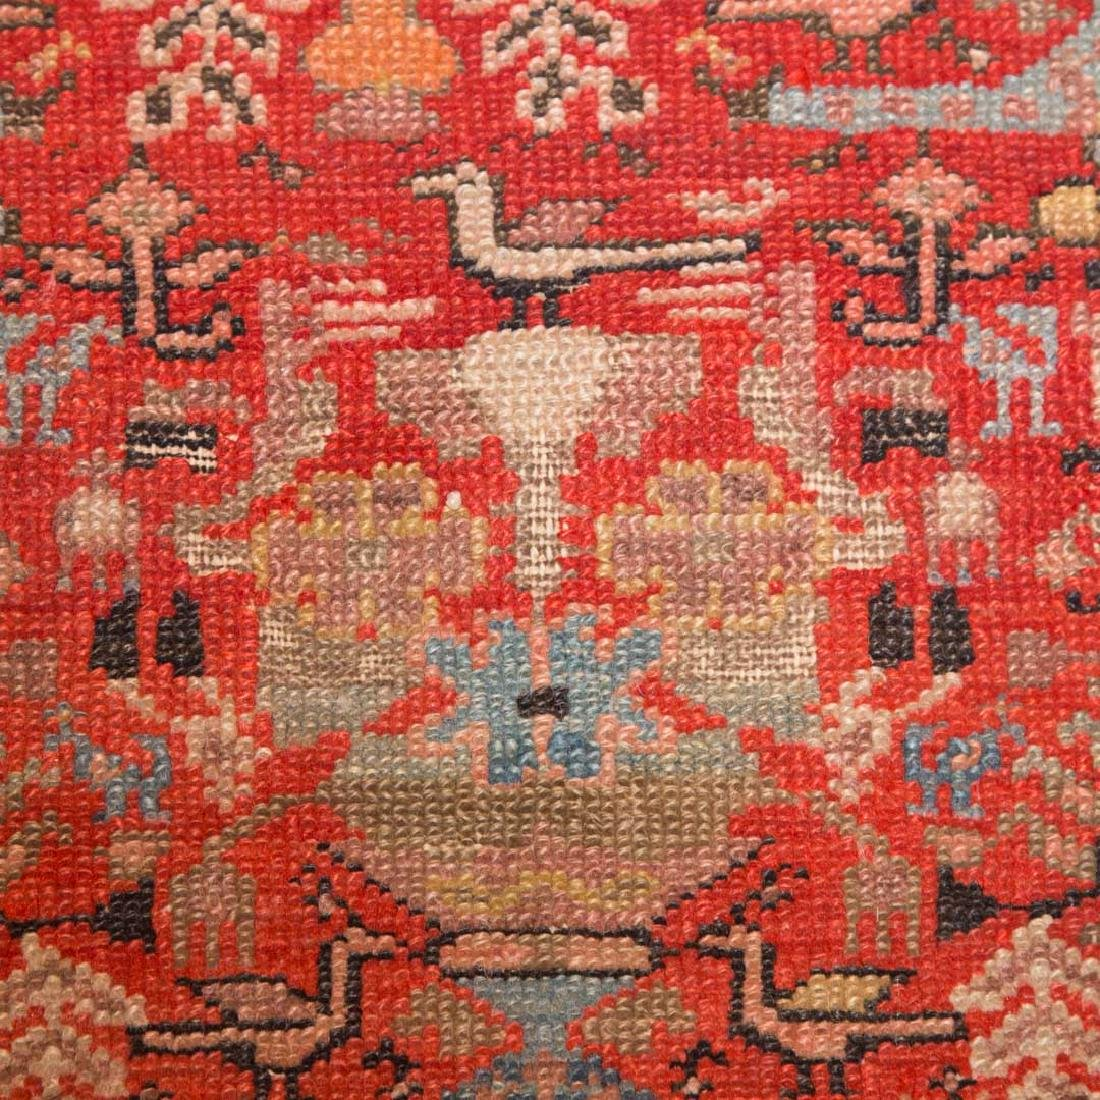 Antique Malayer rug, approx. 4 x 6.10 - 5